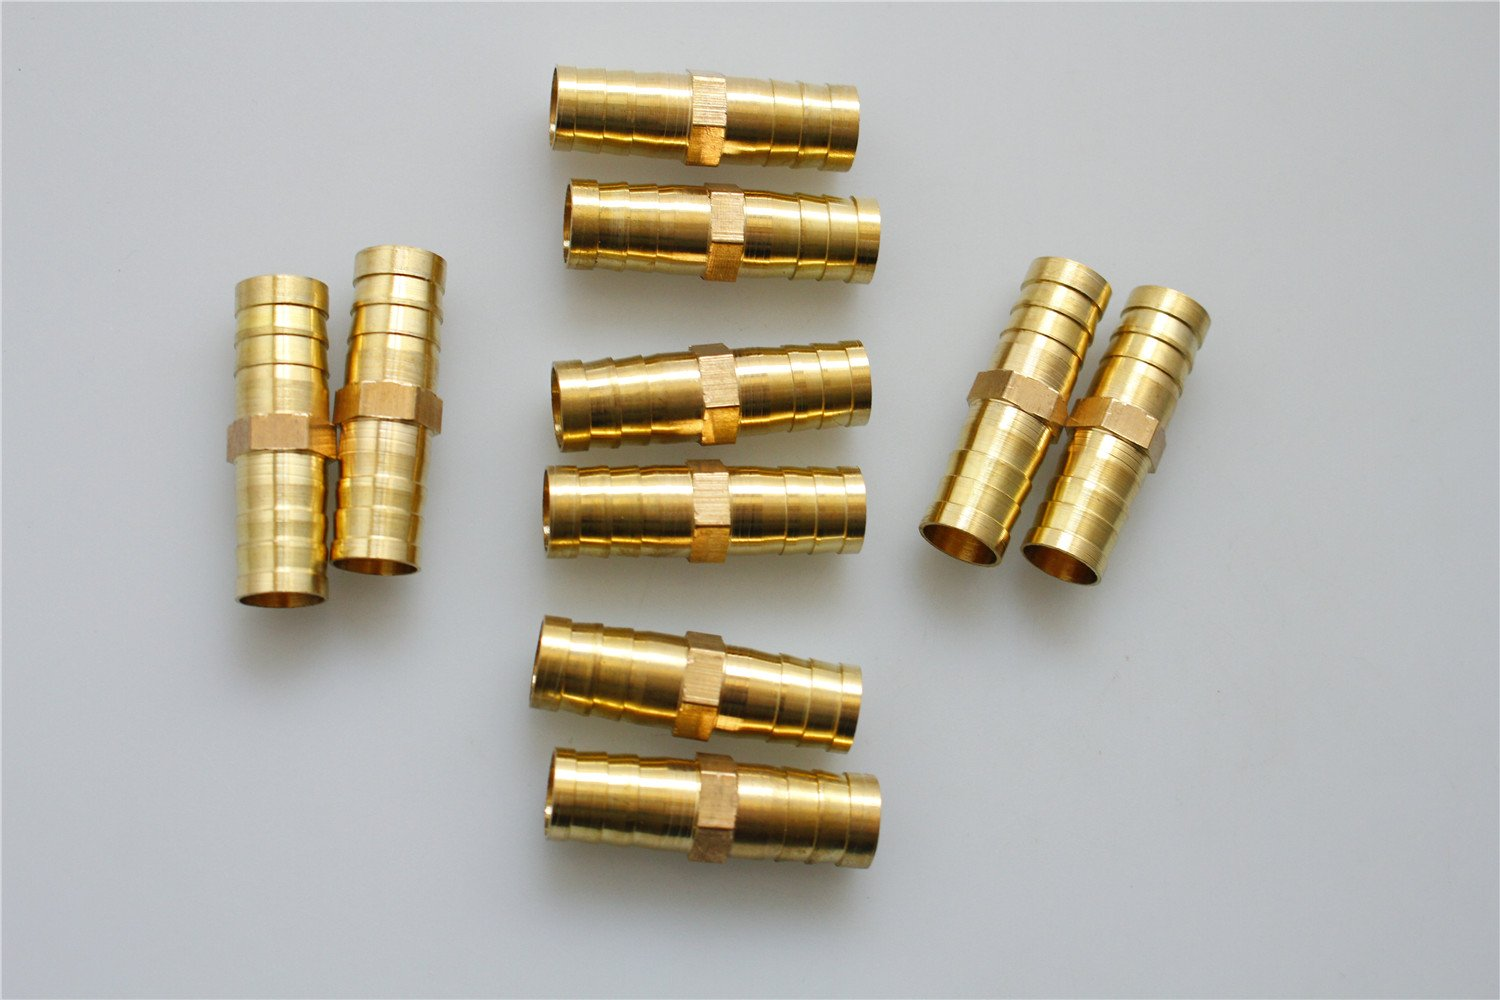 10Pcs Quick Coupling Fitting Brass 12mm to 12mm Straight Hose Barb